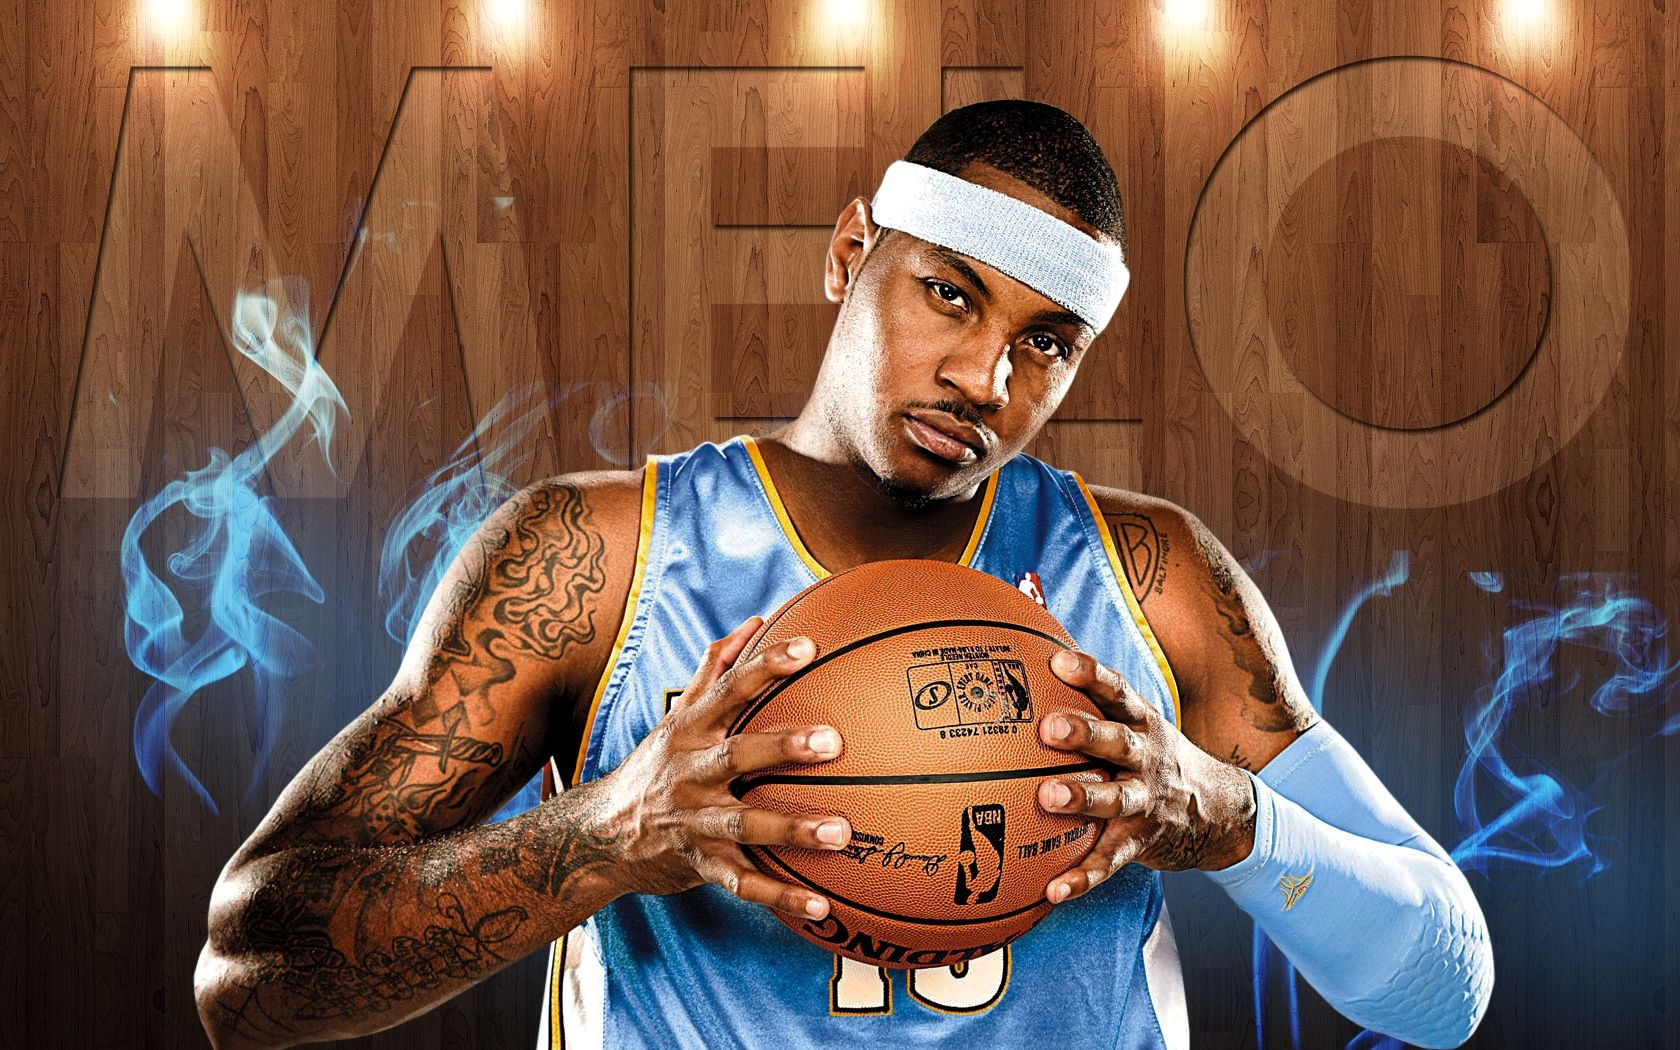 Carmelo anthony denver nuggets picture hd wallpaper sd pinterest carmelo anthony denver nuggets picture hd wallpaper voltagebd Images